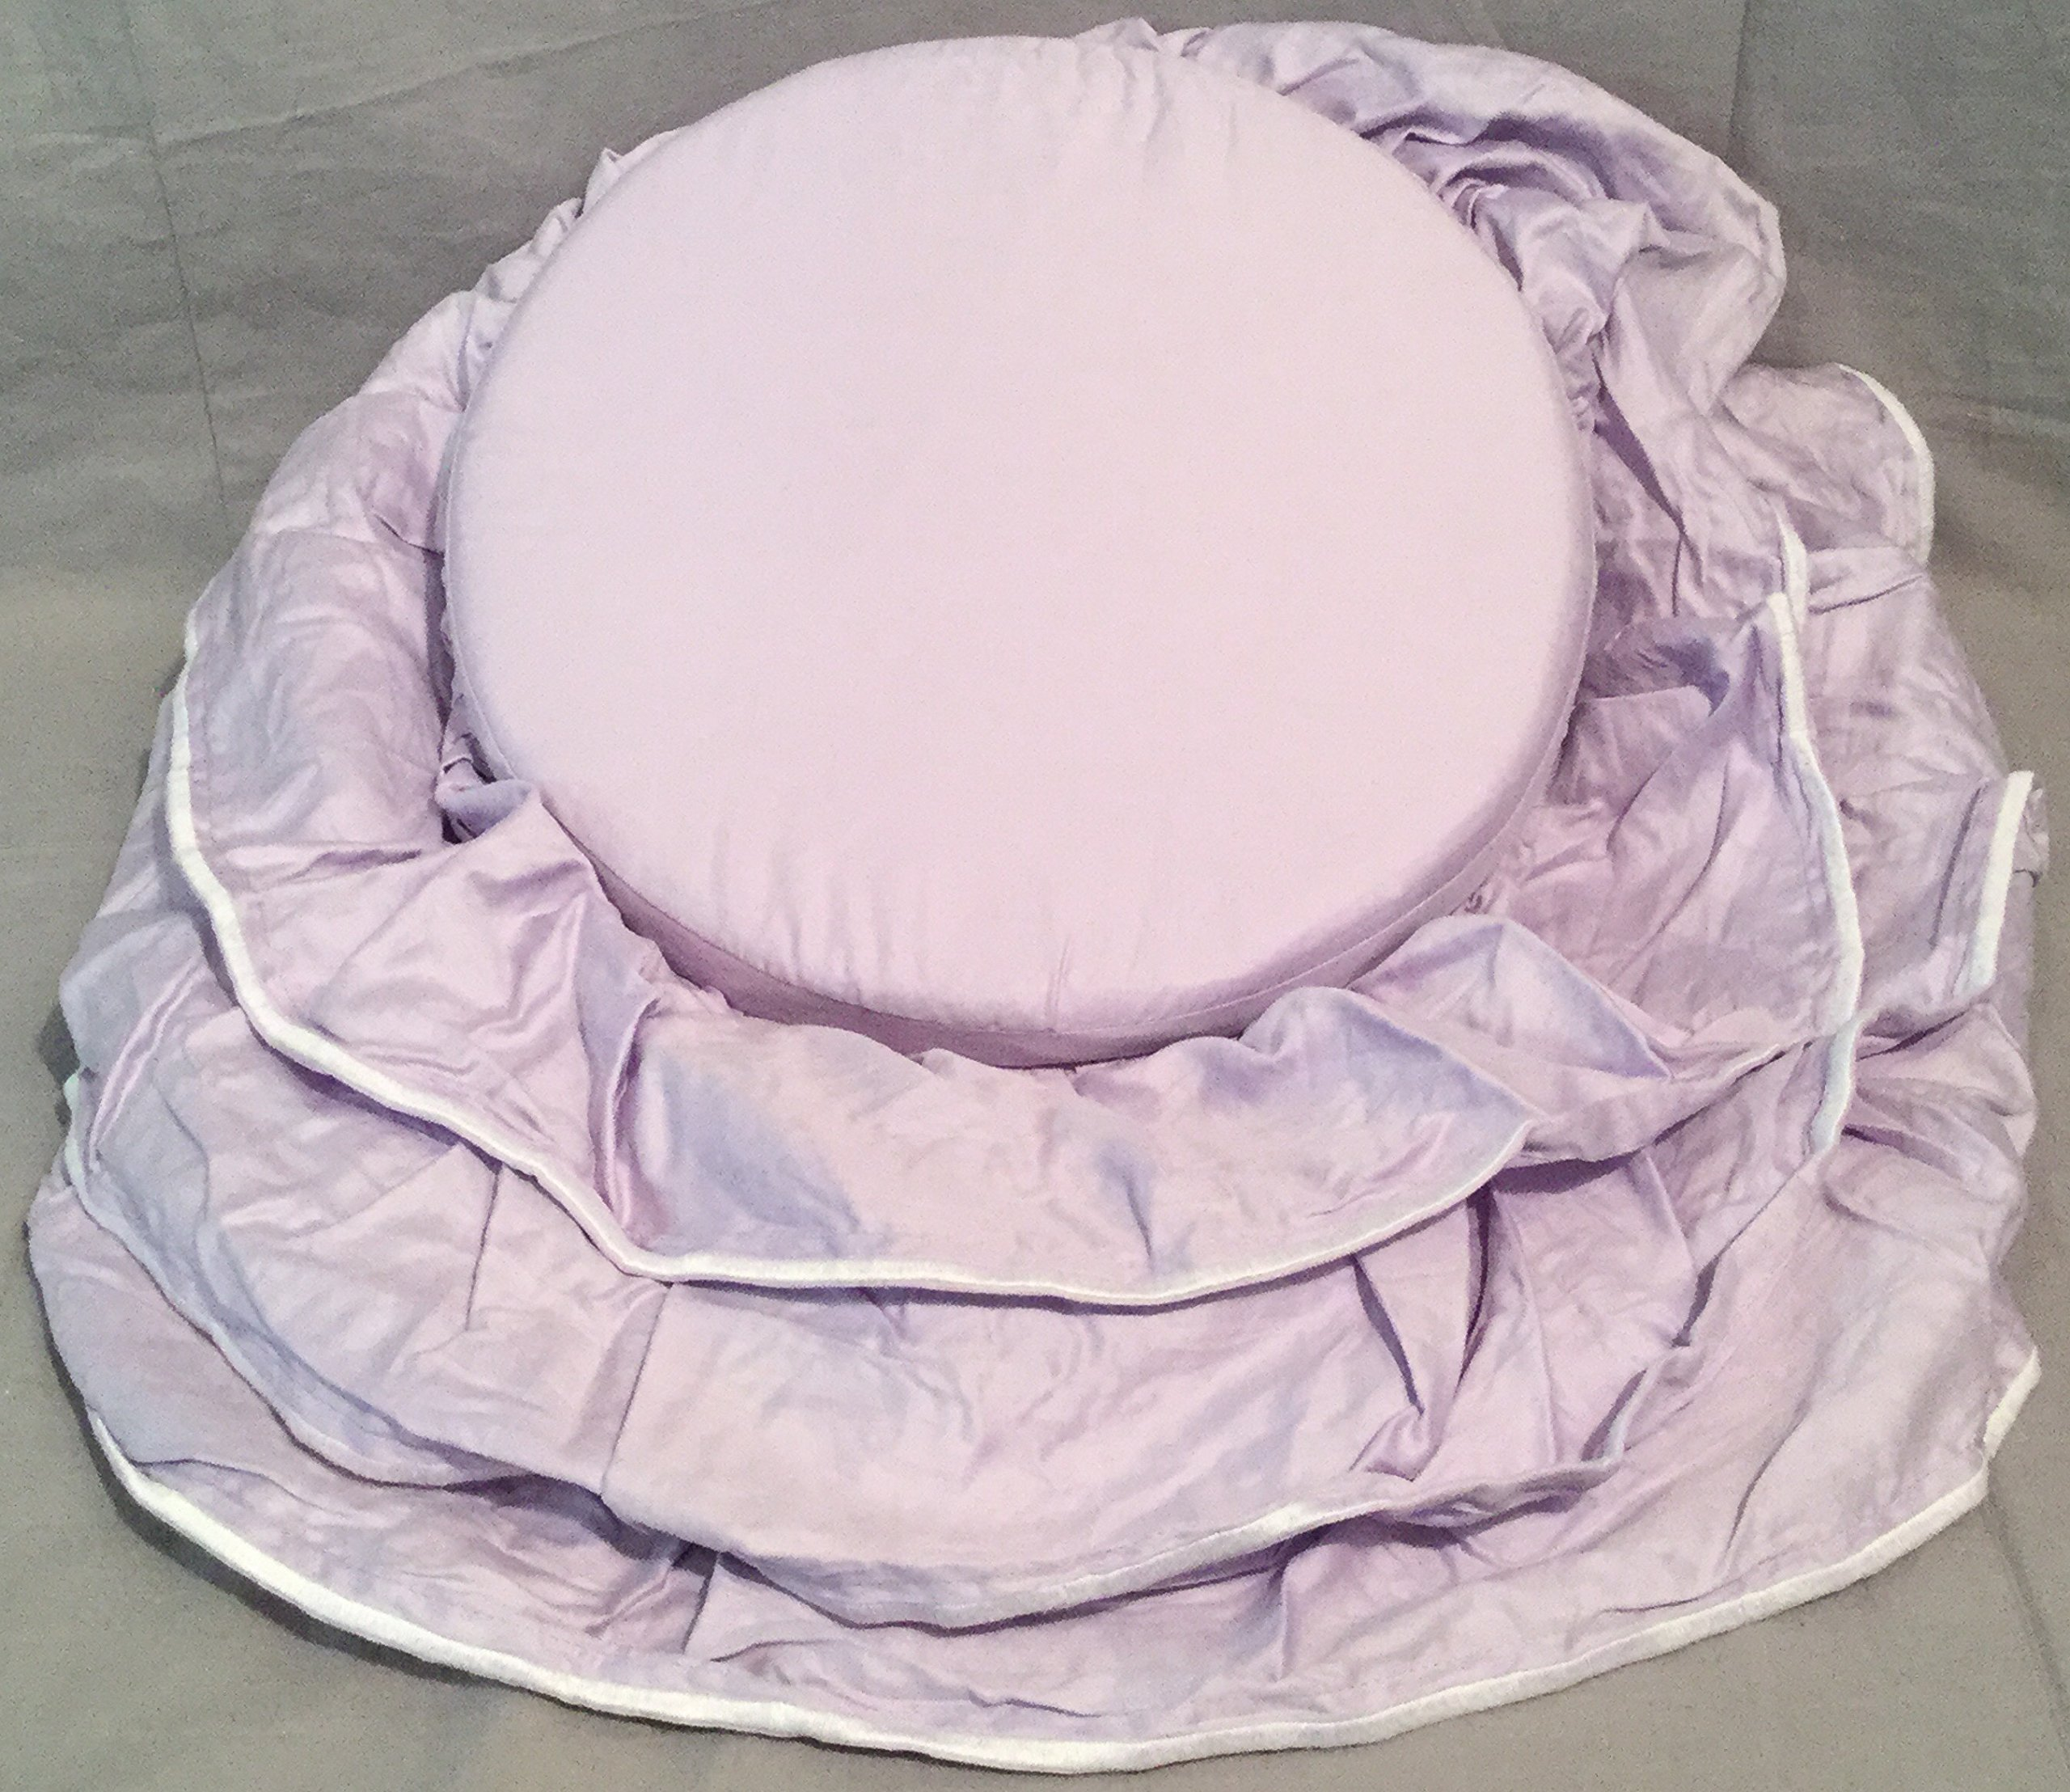 Pottery Barn Kids Lavender Ruffle Vanity Cushion by Pottery Barn Kids